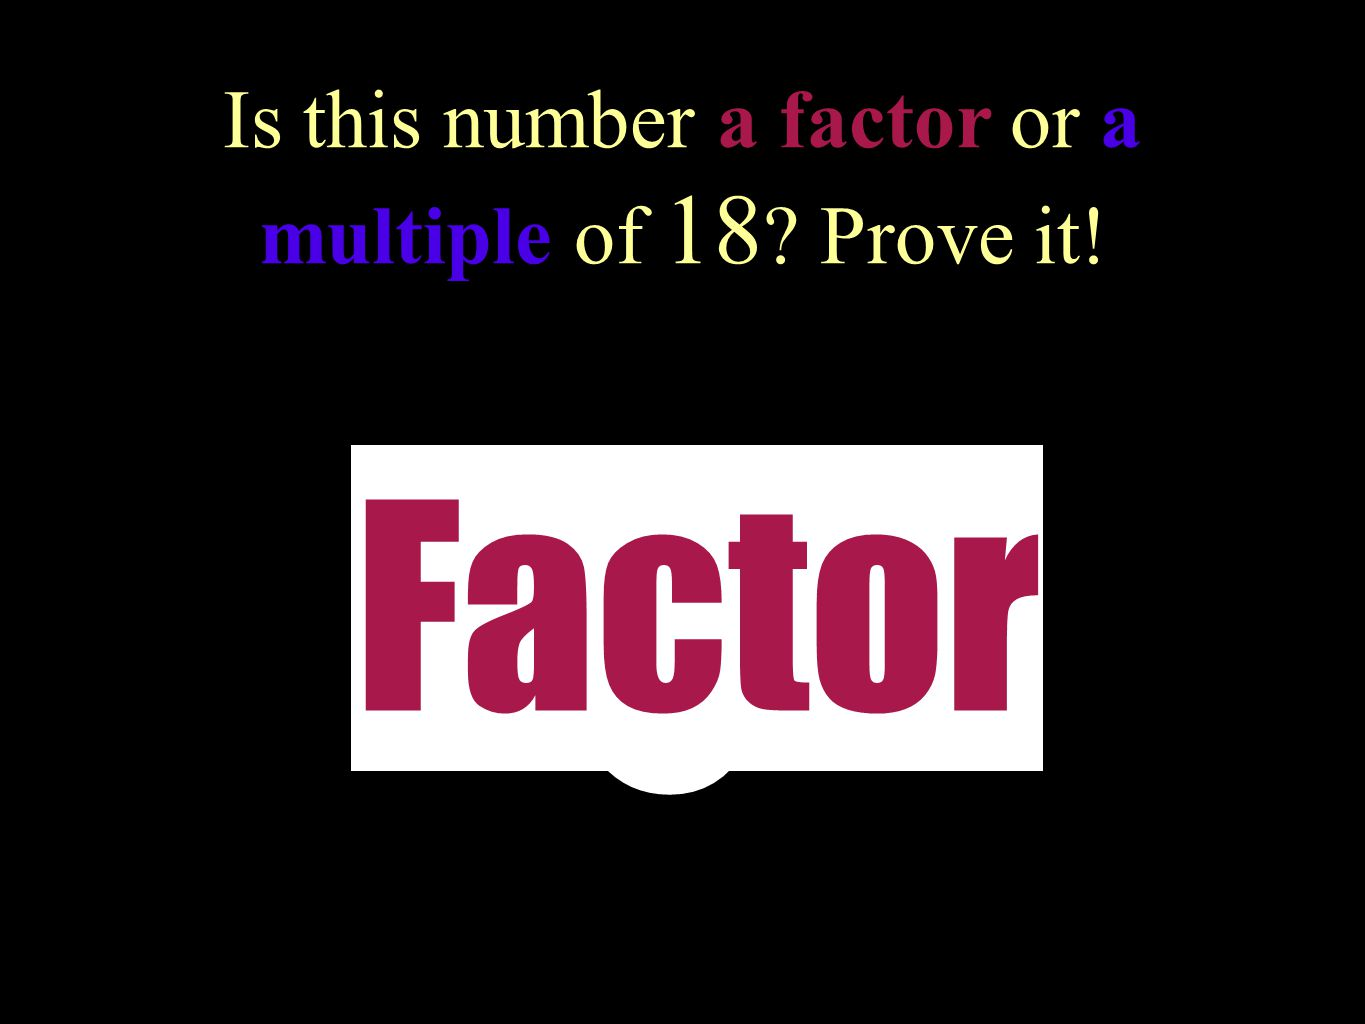 Is this number a factor or a multiple of 18 Prove it!